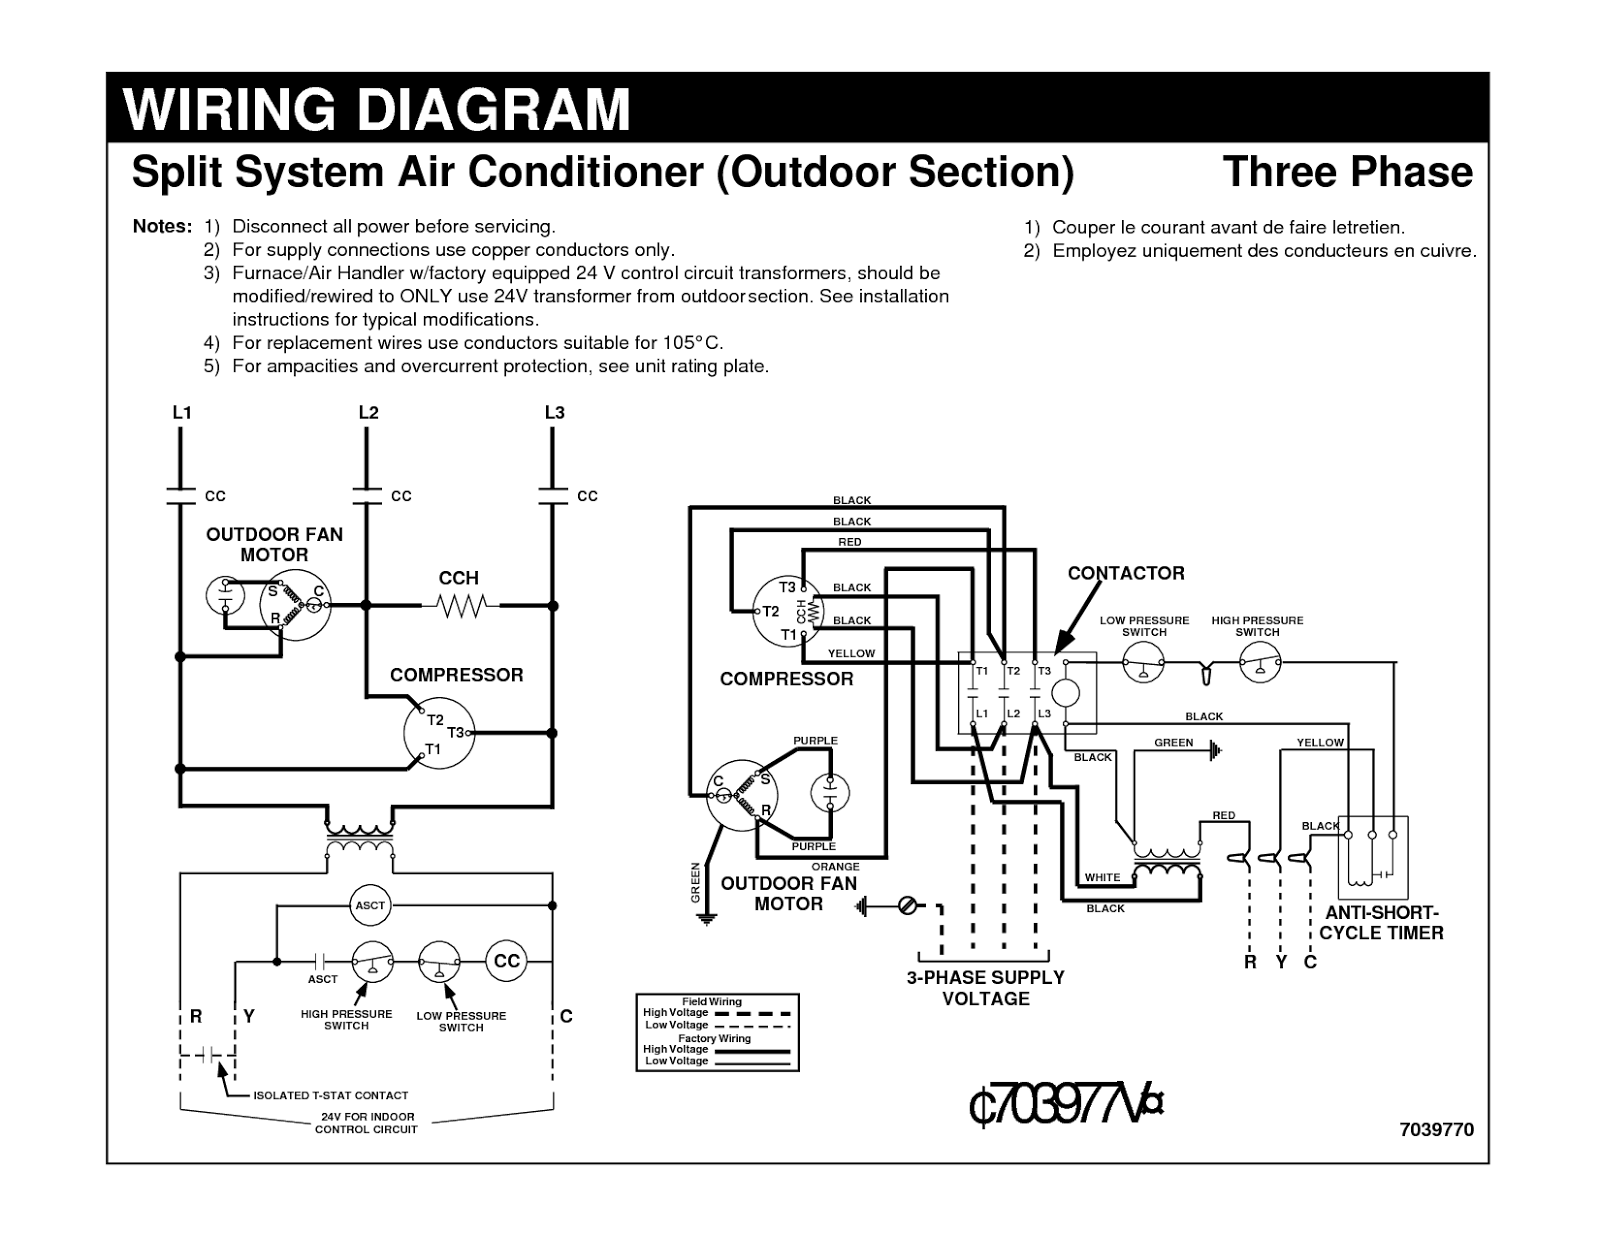 wiring+diagram+in+the+user+manual electrical wiring diagrams for air conditioning systems part one wiring diagram for dummies at couponss.co